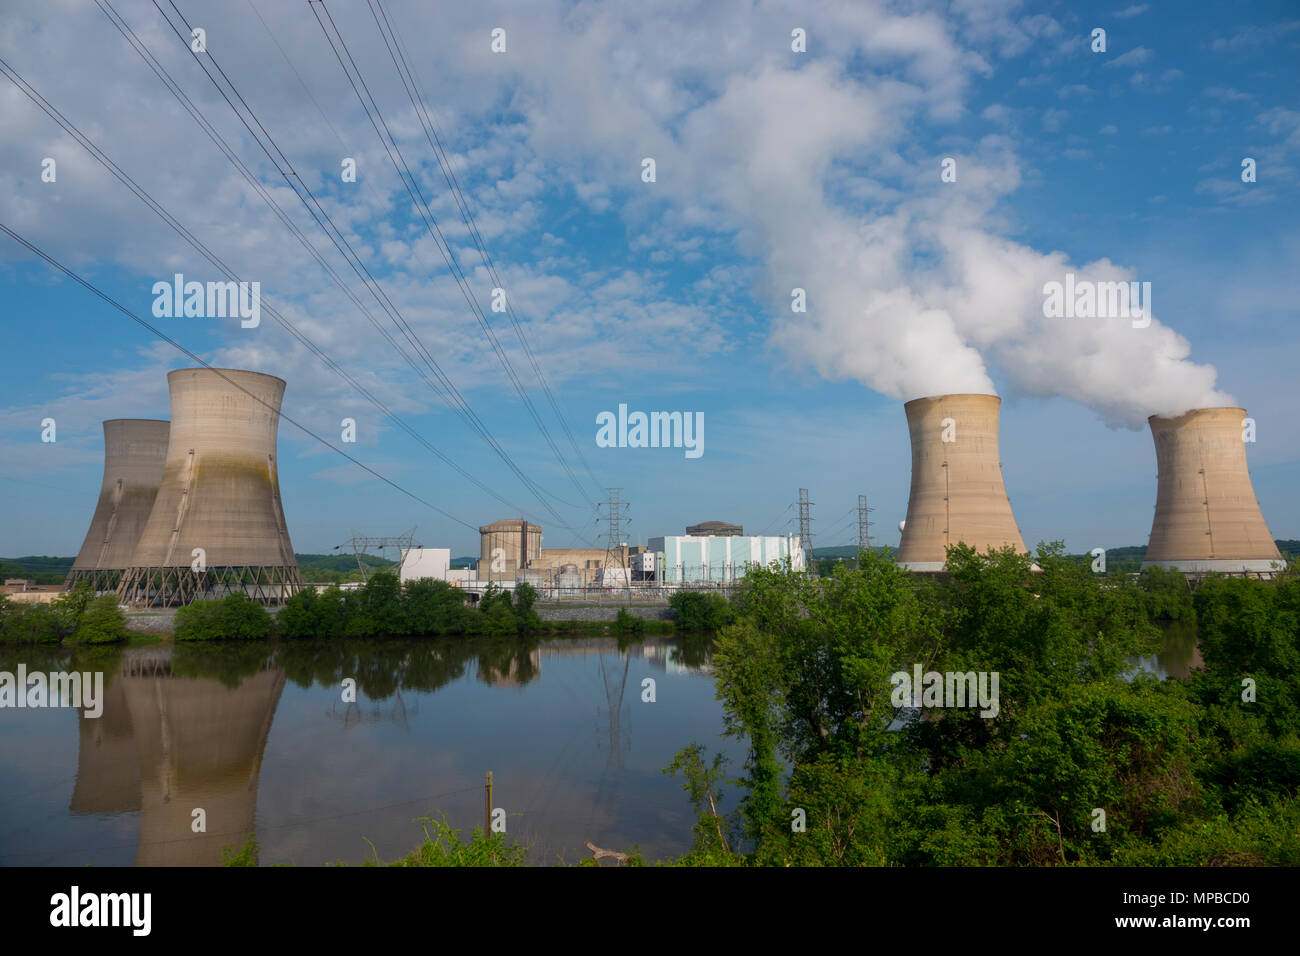 usa-pennsylvania-pa-harrisburg-three-mile-island-nuclear-power-plant-site-the-1979-accident-electric-energy-MPBCD0.jpg